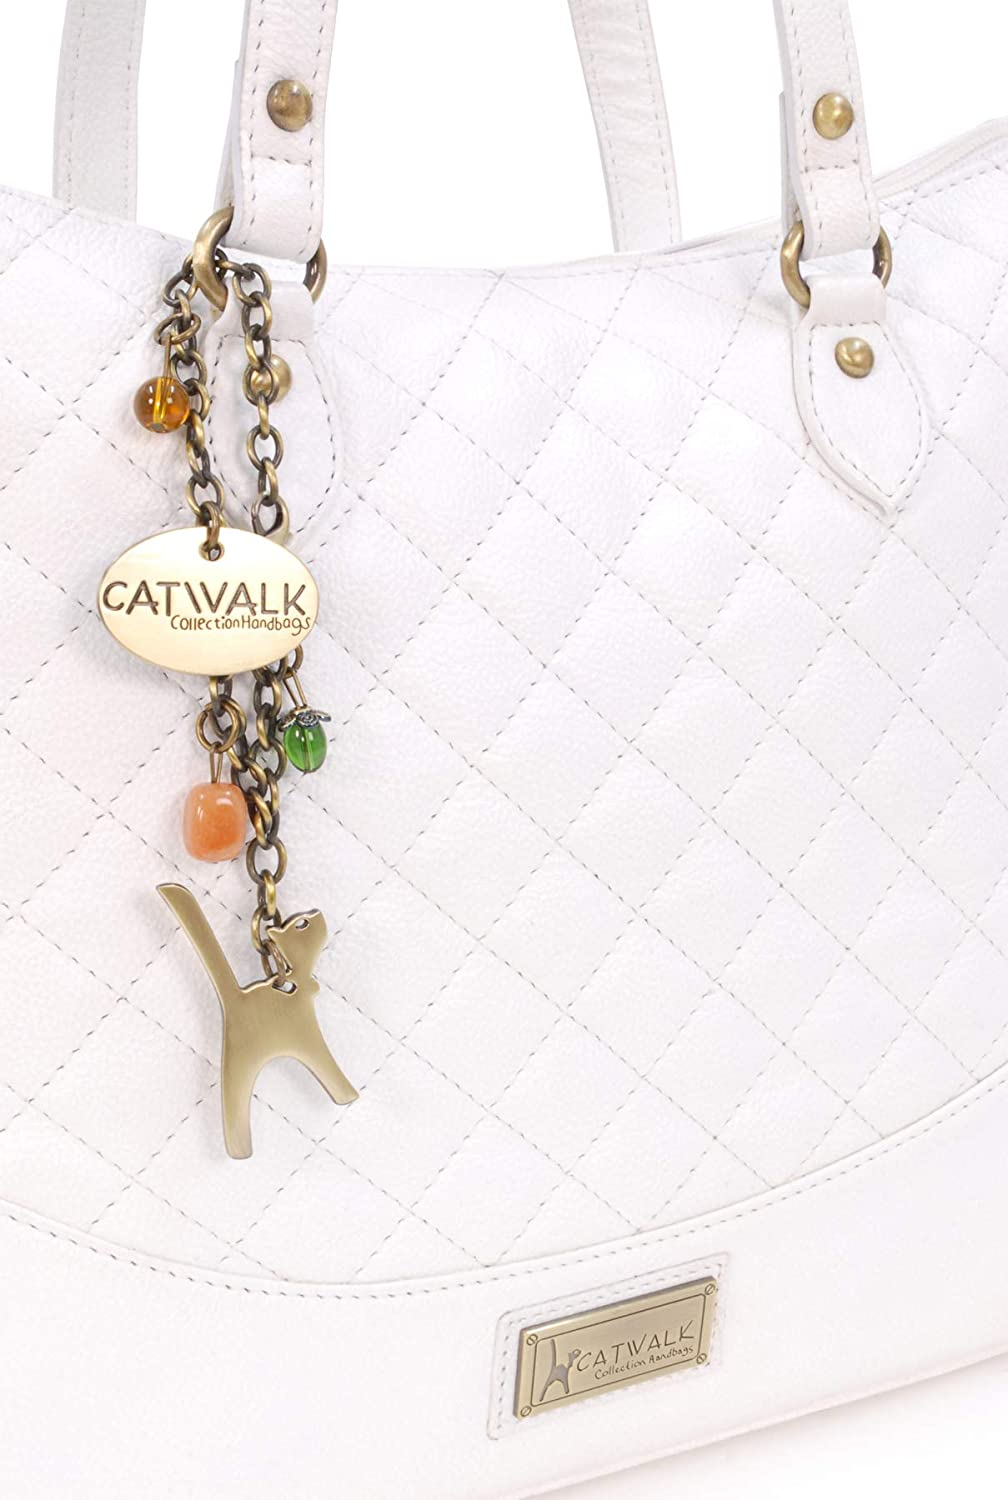 CATWALK COLLECTION - Bolso de hombro/Tote - Cuero Acolchado - SOFIA - Blanco: Amazon.es: Zapatos y complementos